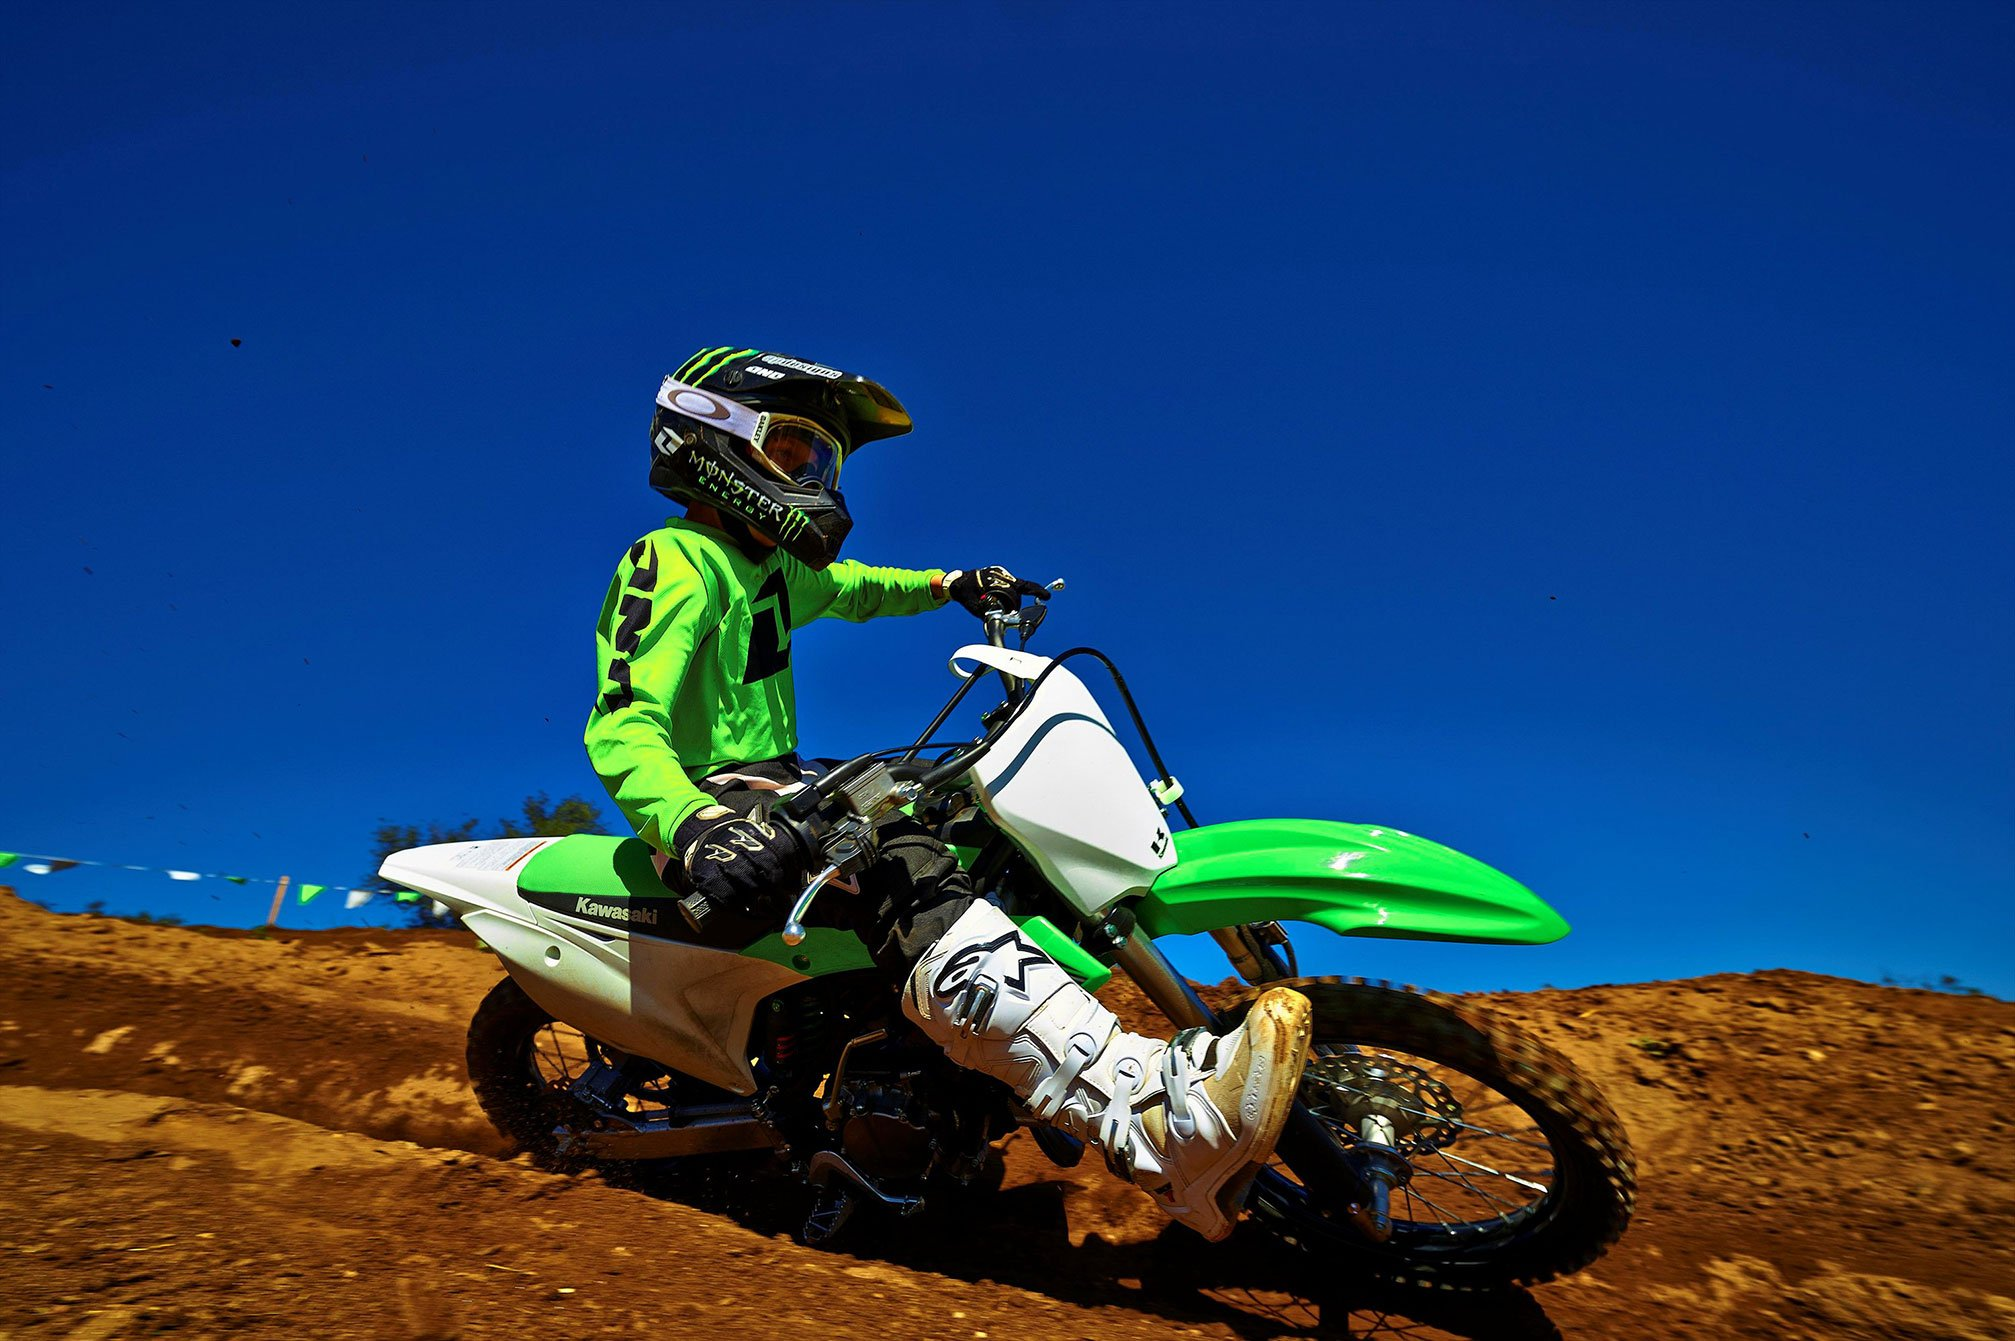 2015 Kawasaki KX85 motocross dirtbike wallpaper 2015x1341 505242 2015x1341